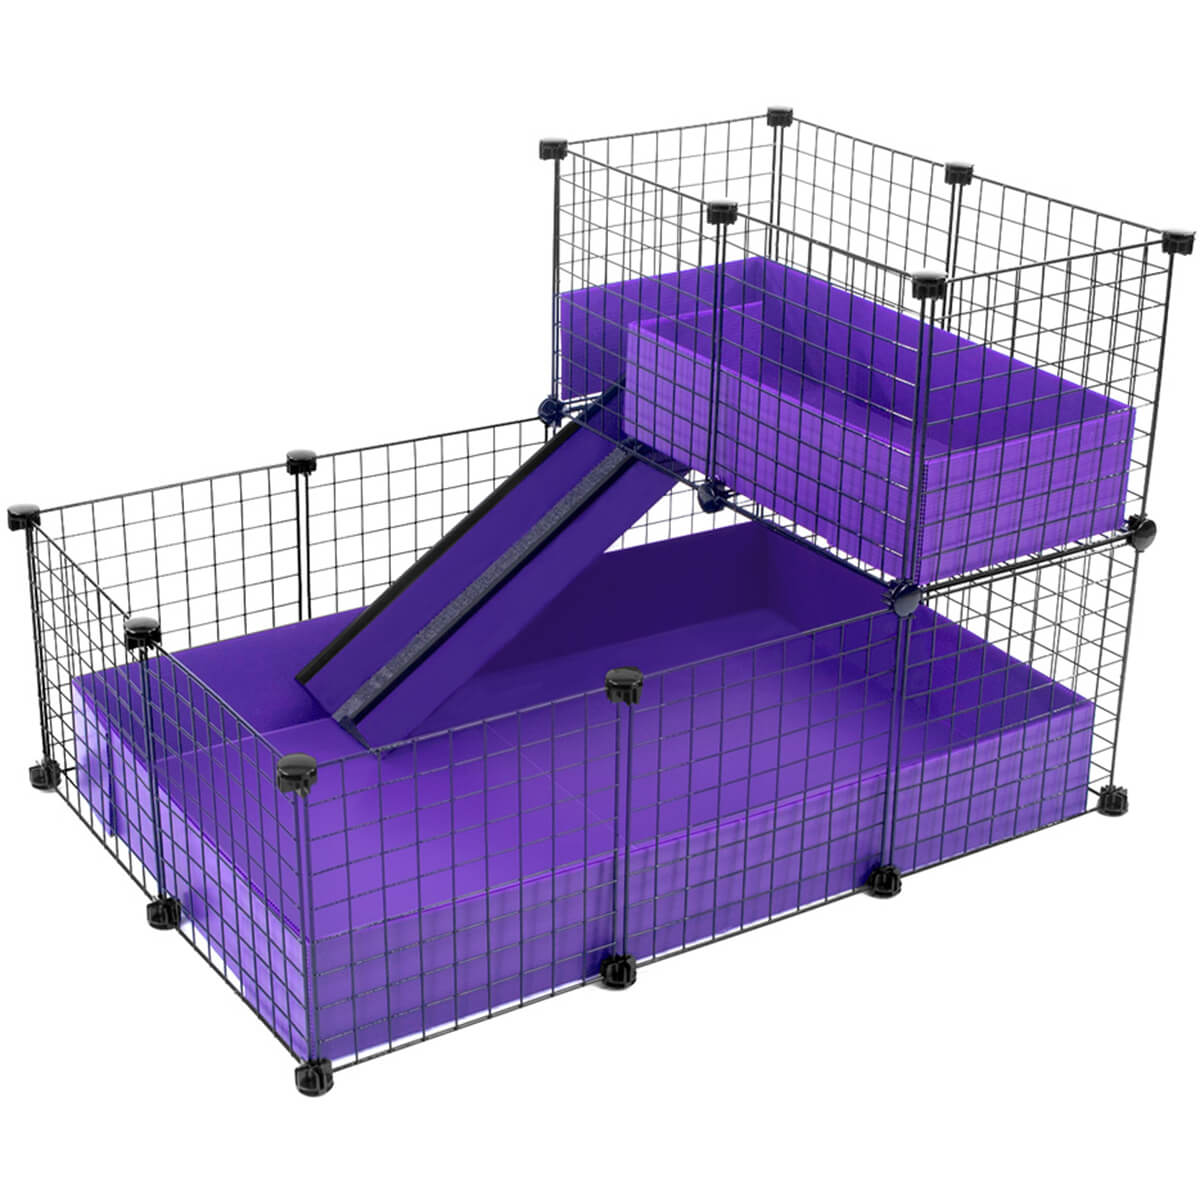 Small 2x3 grids loft deluxe cages c c cages for for Guinea pig and cage for sale